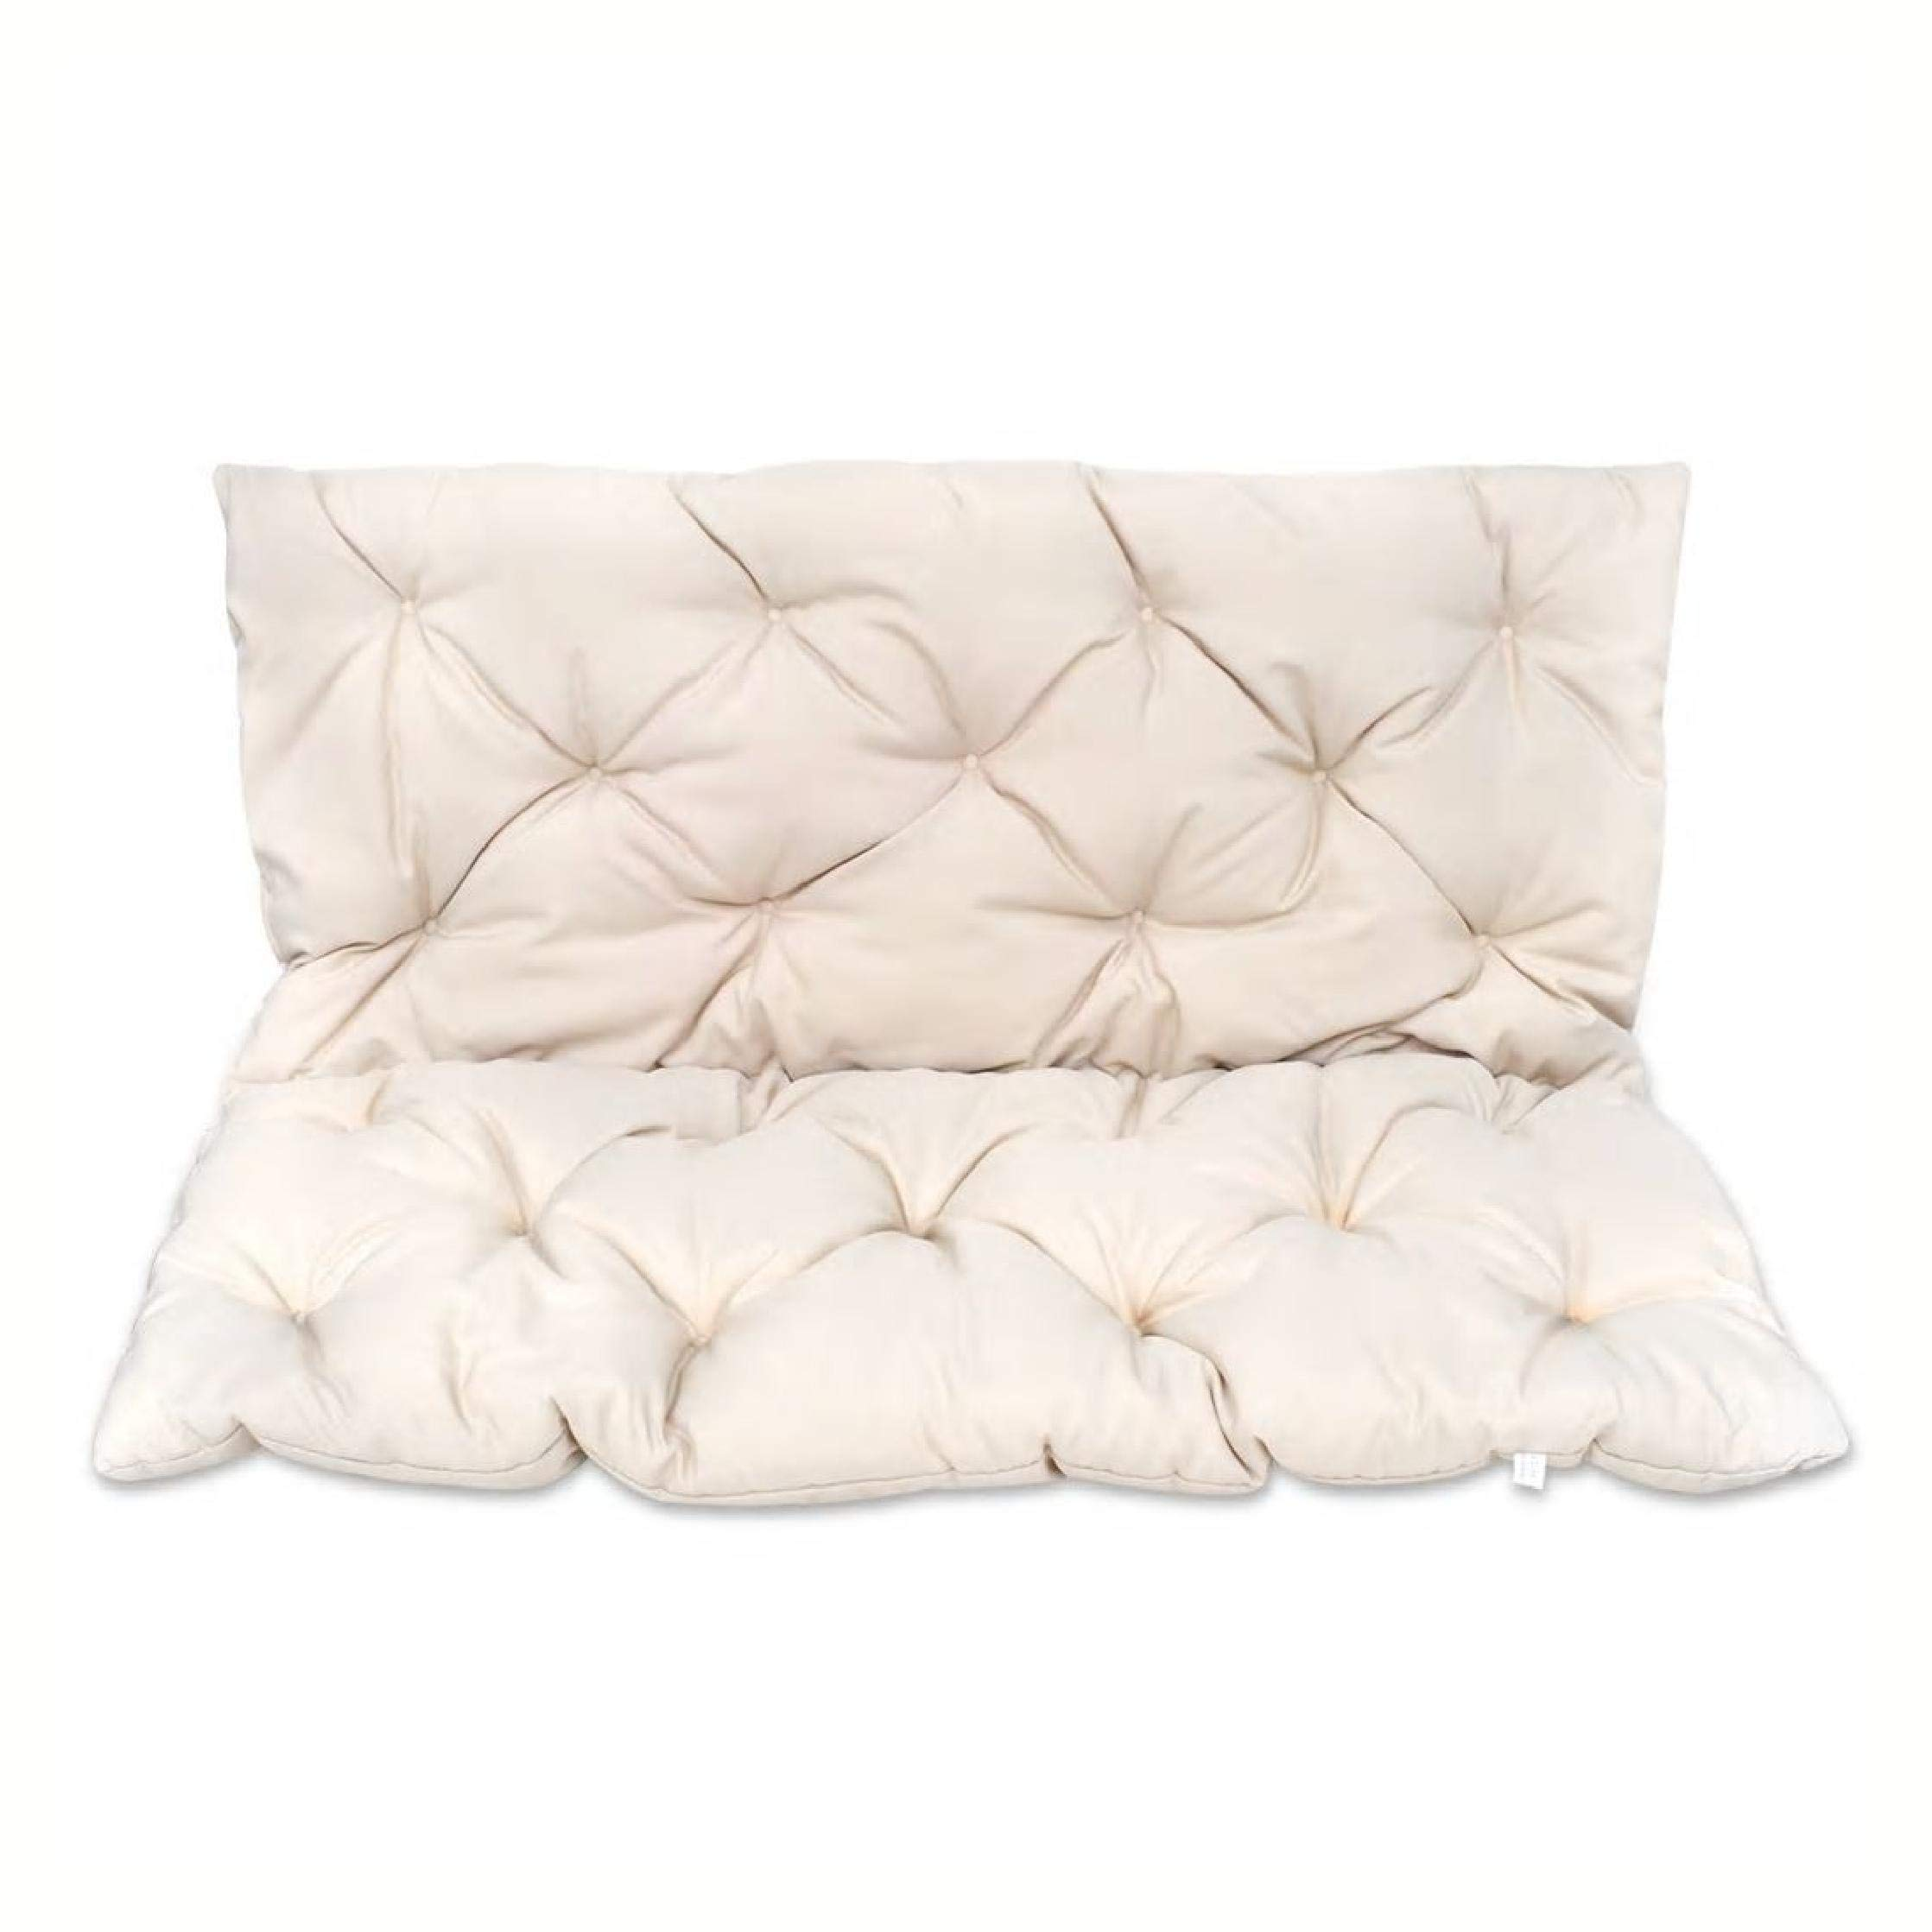 HomyDelight Chair & Sofa Cushion, Cream Cushion for Swing Chair 47.2'' by HomyDelight